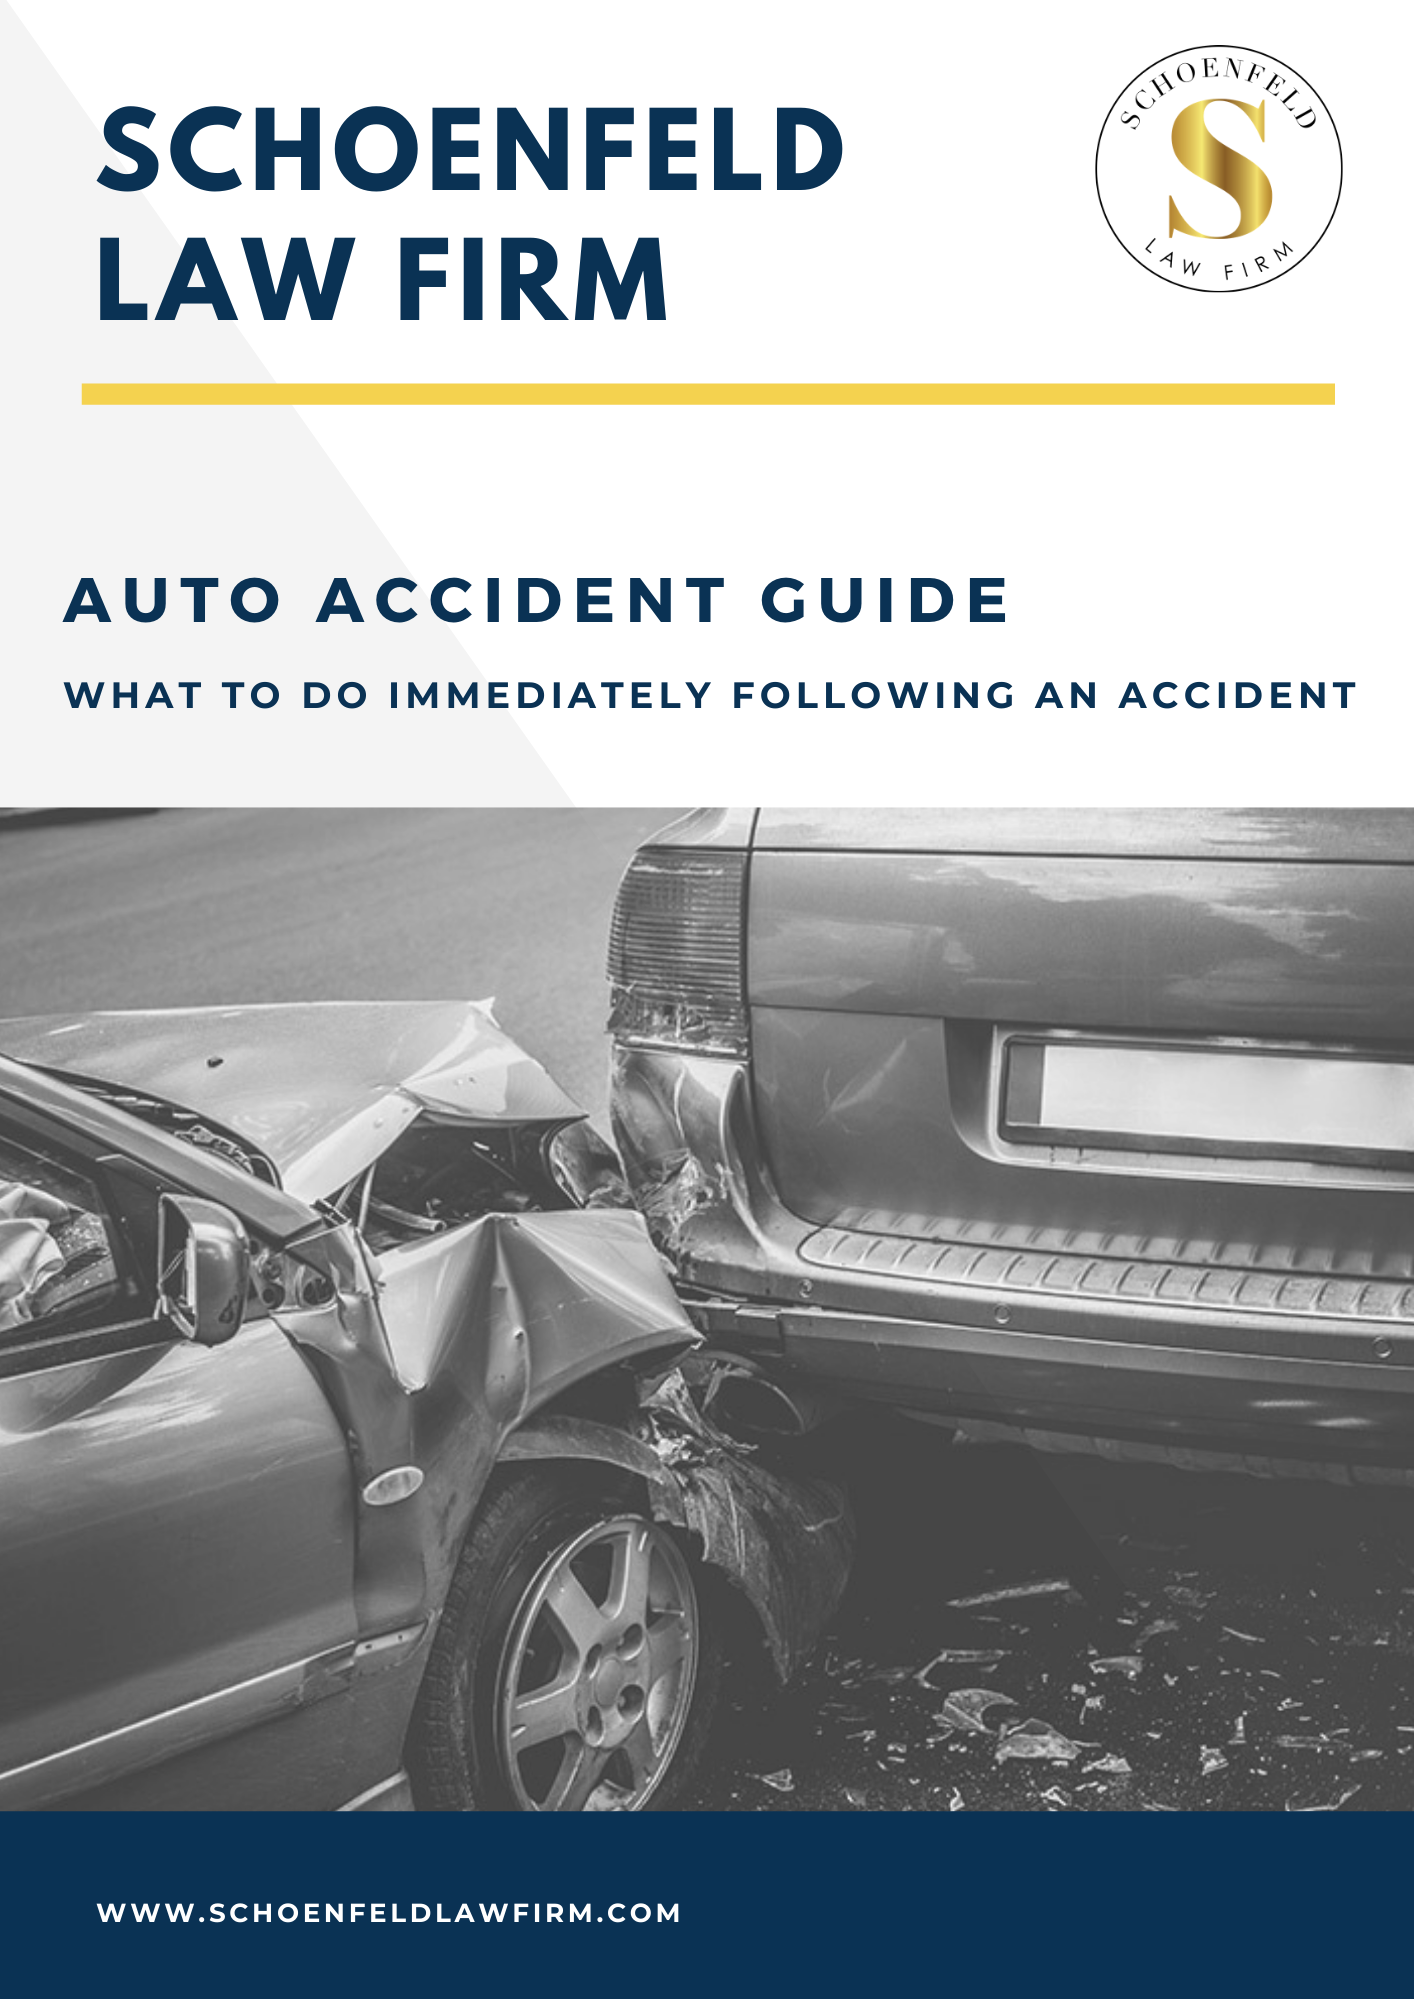 Schoenfeld Law Firm Auto Accident Guide